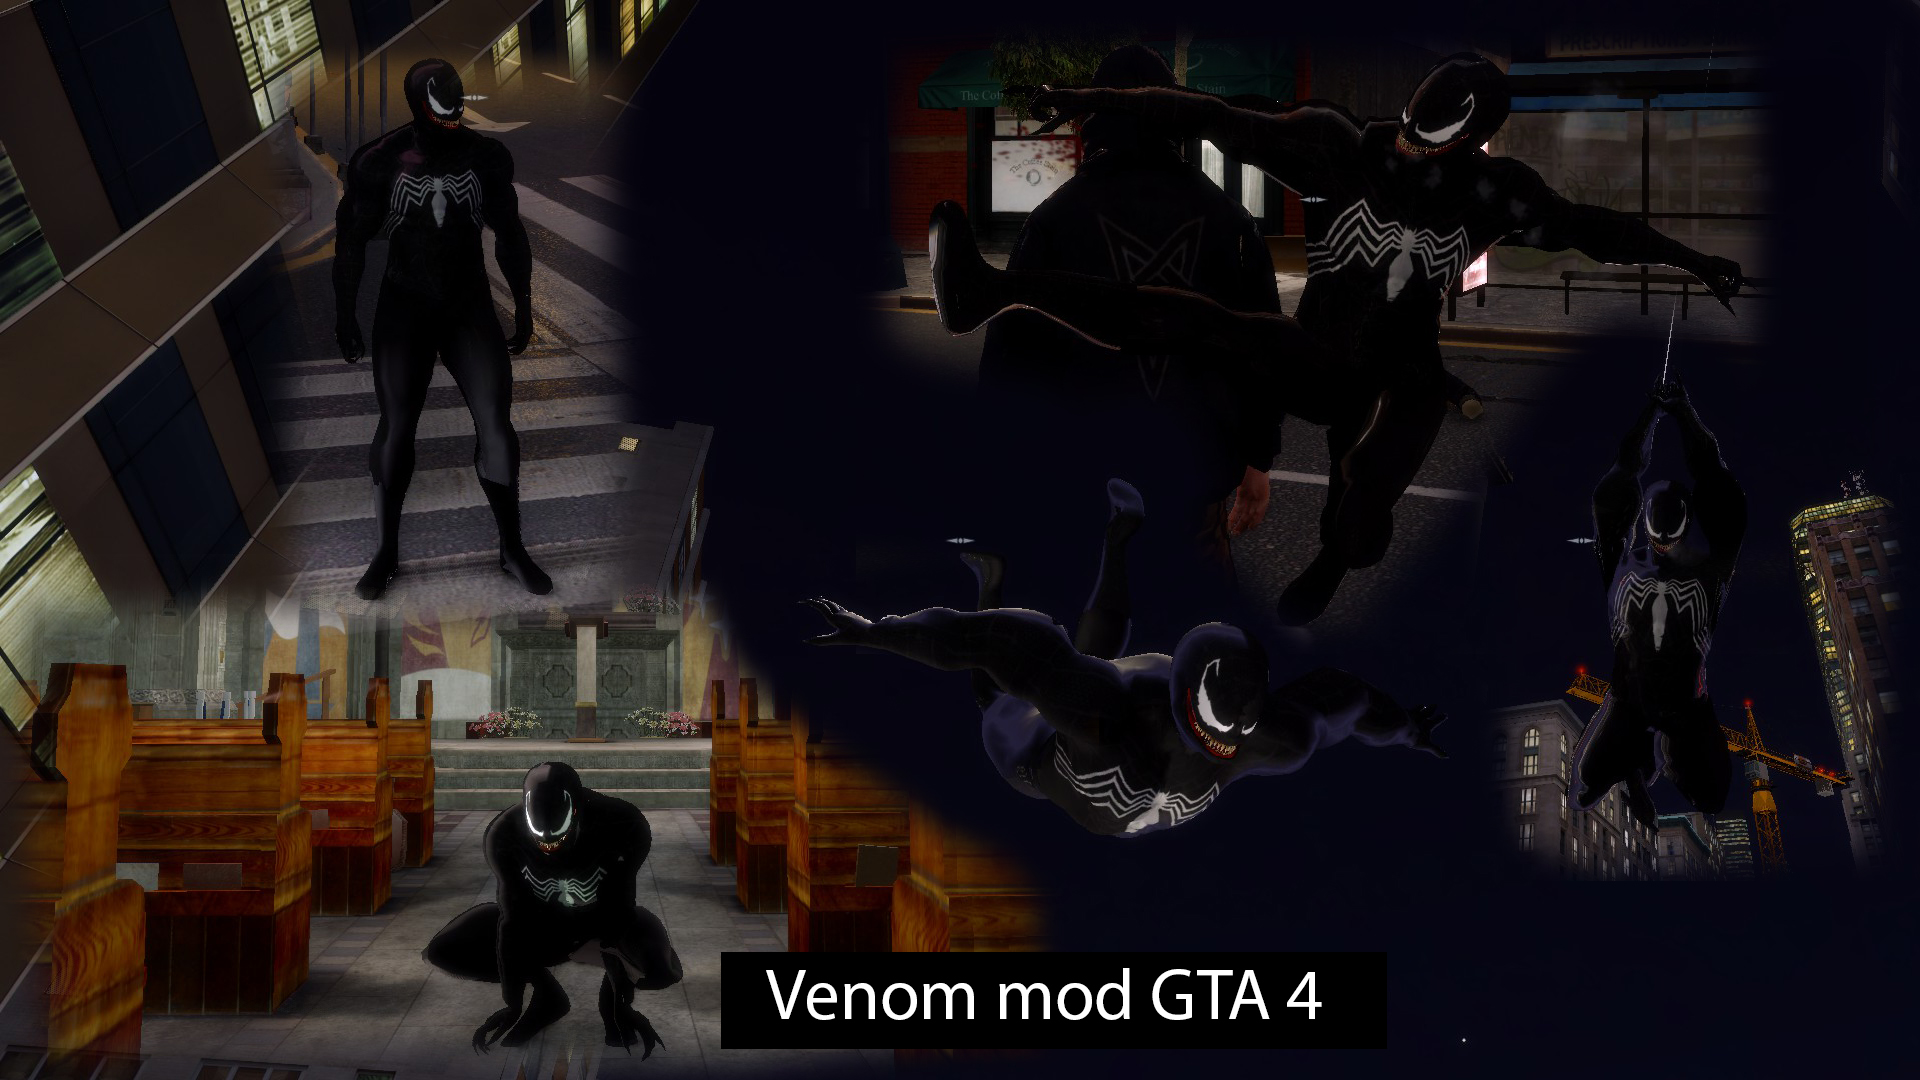 venom from spider-man 3 for gta 4 addon - mod db